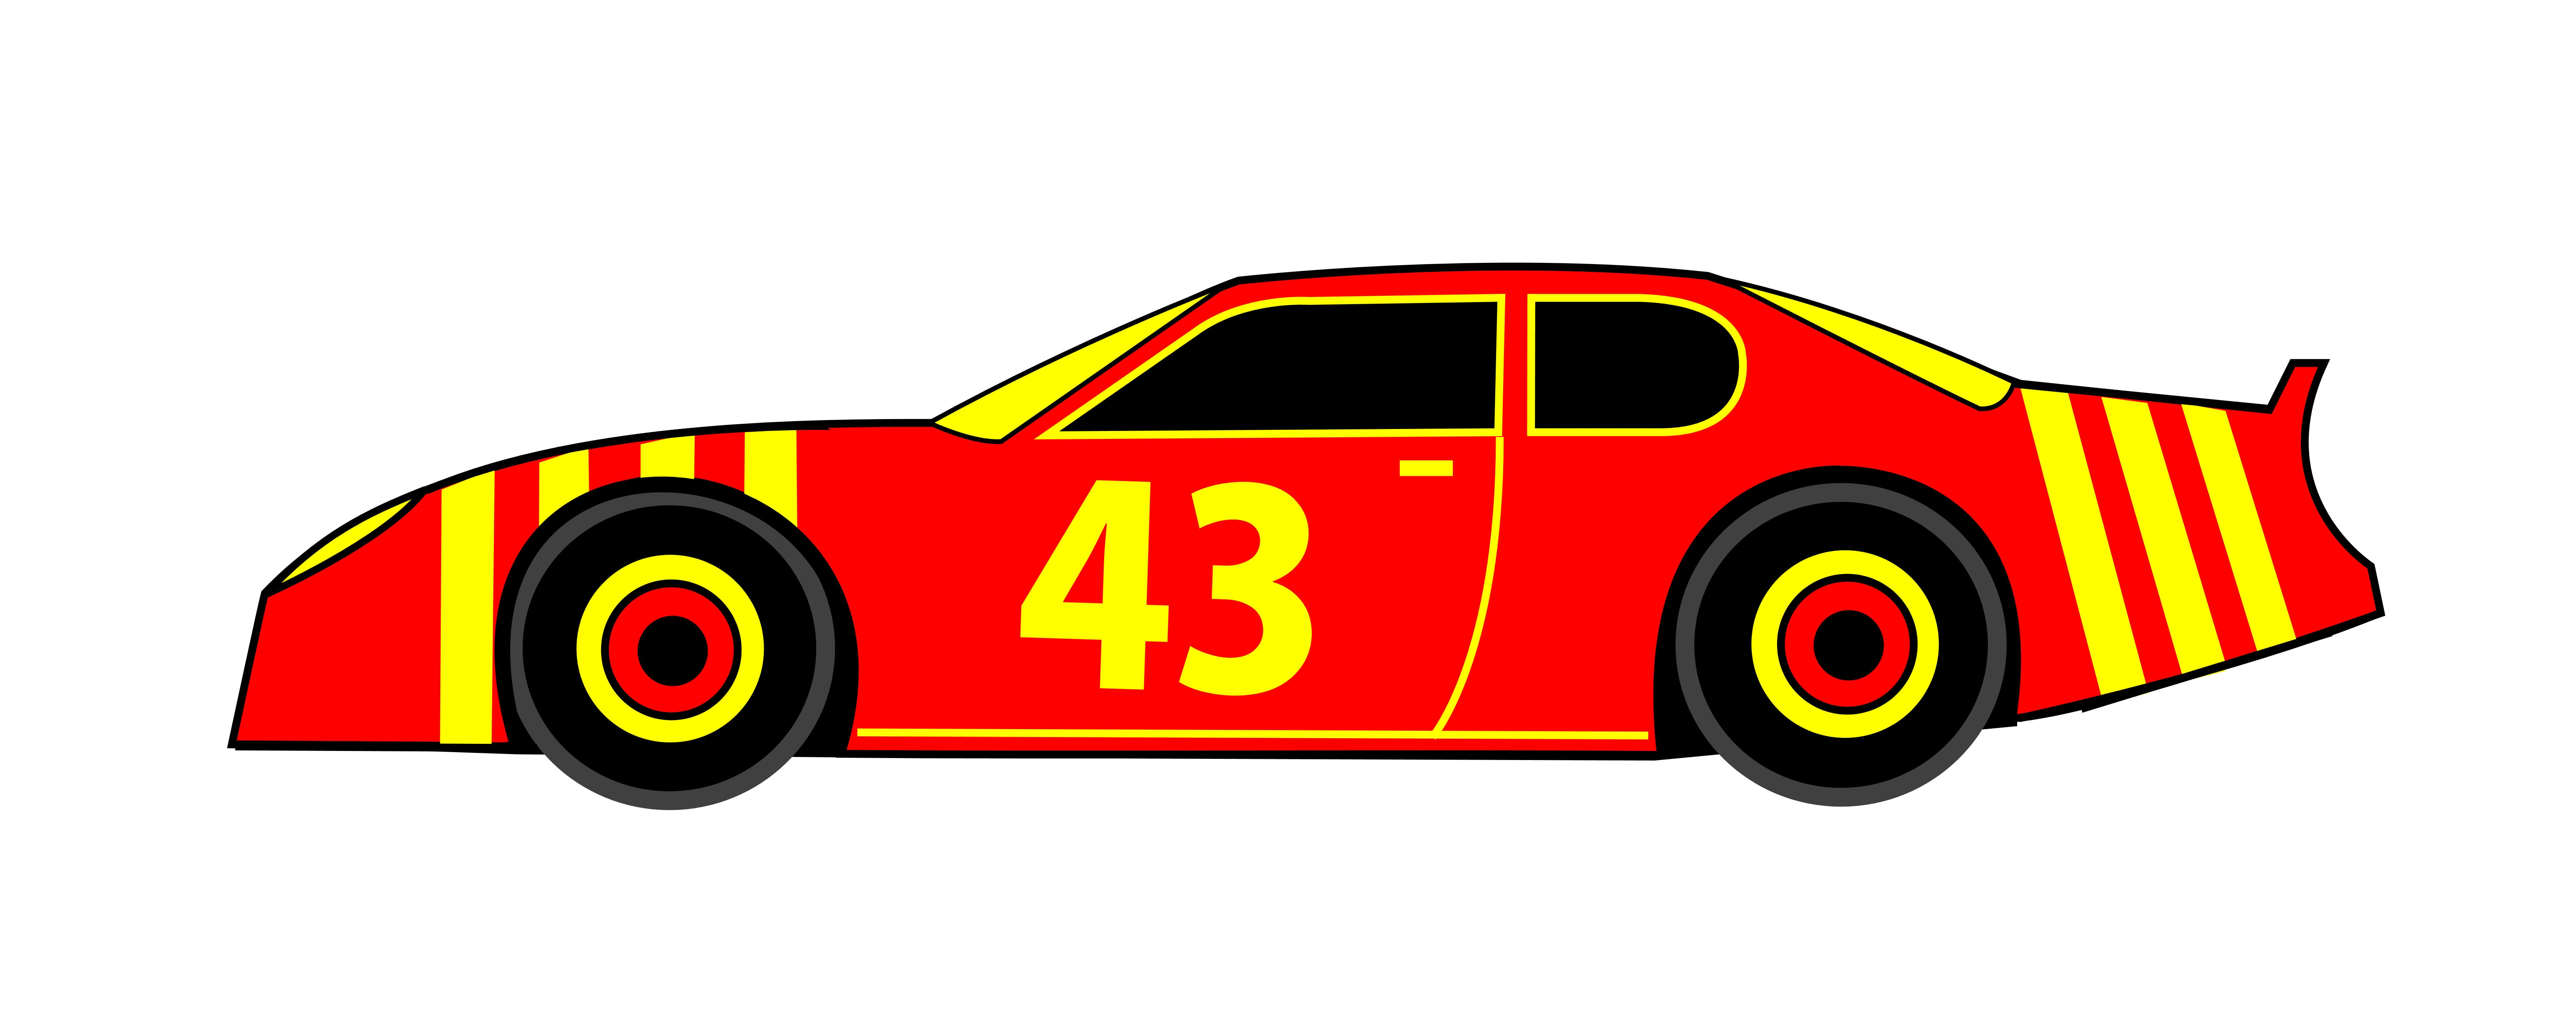 Nascar Race Car Clip Art ..-Nascar Race Car Clip Art ..-8